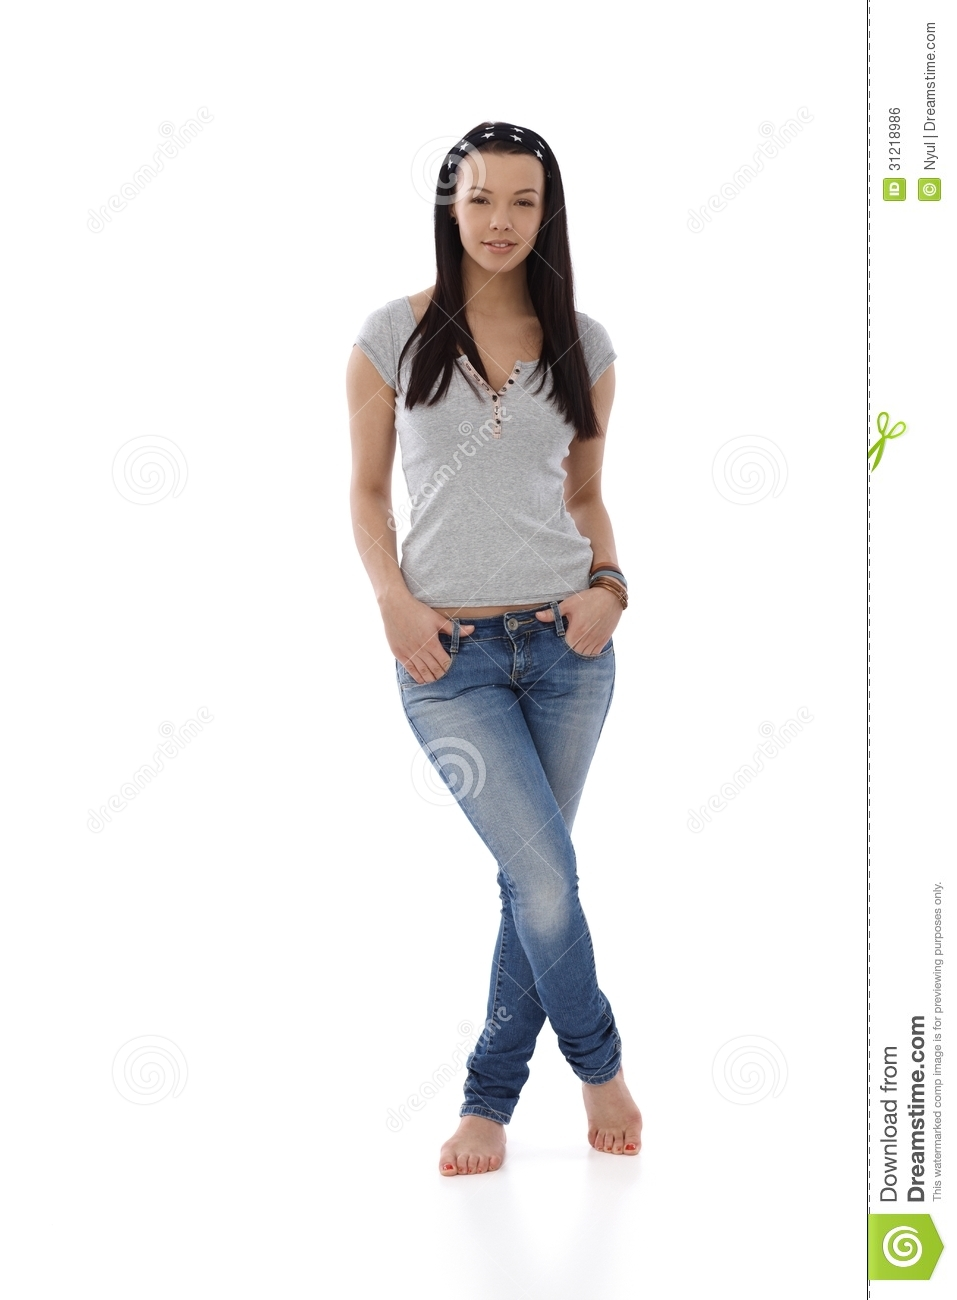 Young Girl In Jeans And T-shirt Standing Barefoot Stock Photo - Image of cutout female 31218986